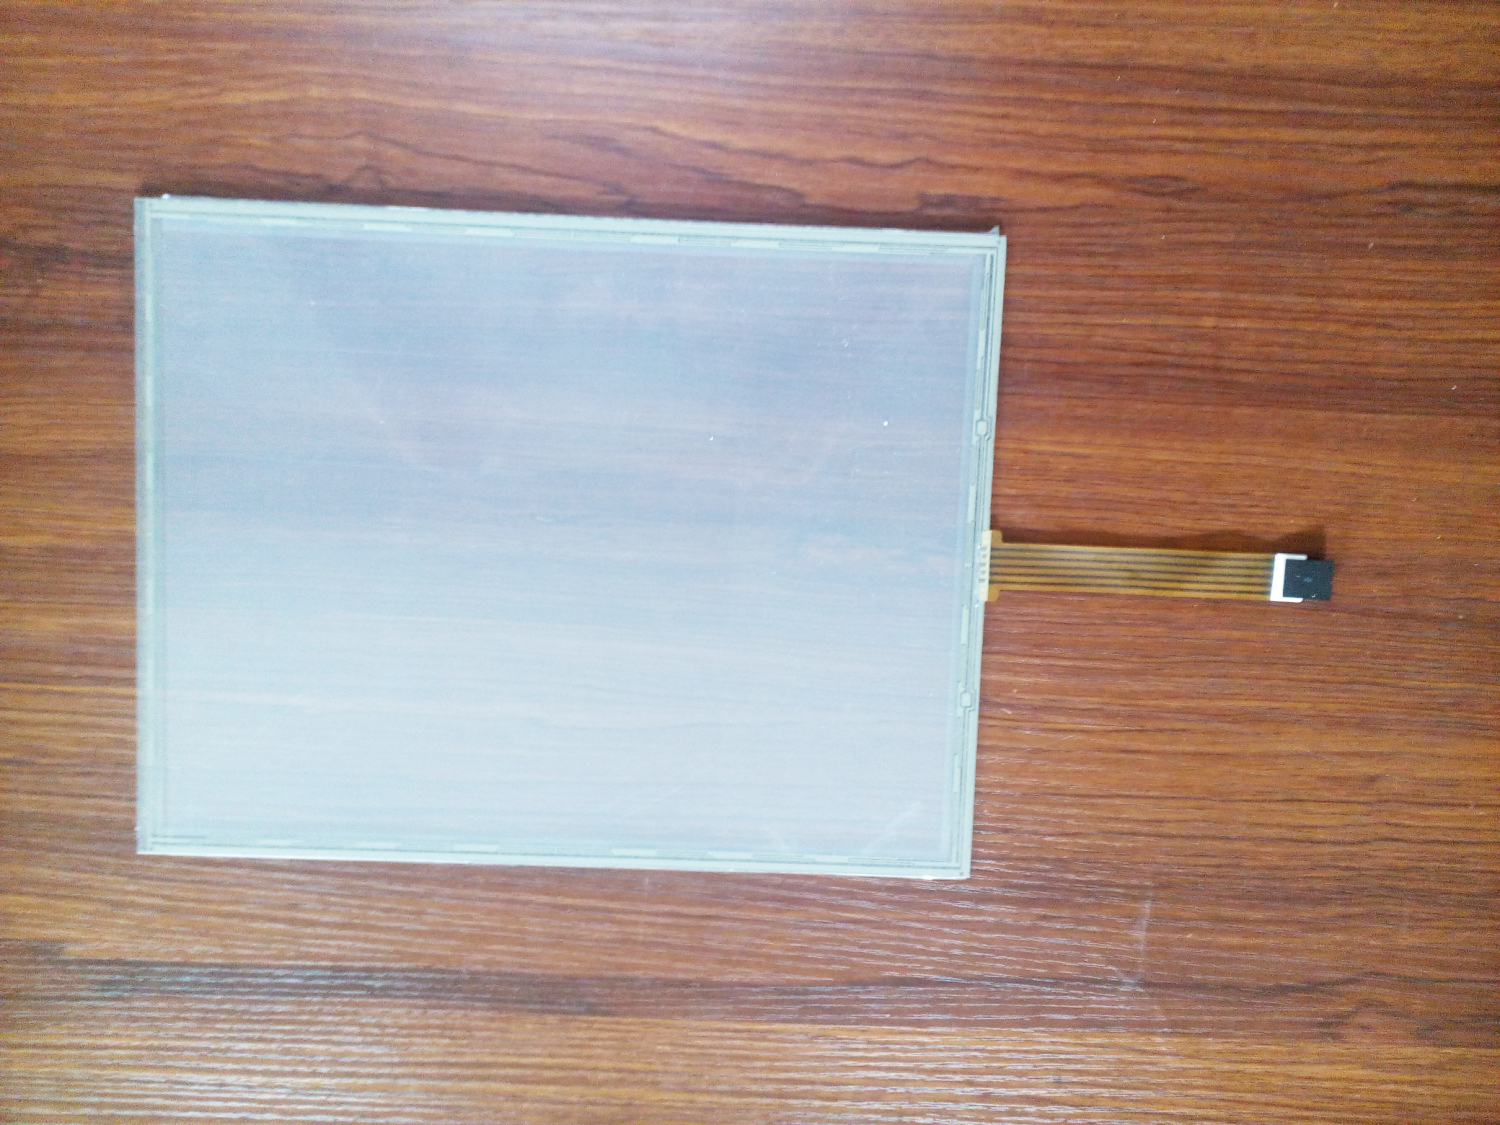 "Touch Screen Glass for 15.0"" TP1500 6AV6647-0AG11-3AX0 LCD Touchpad HMI Panel"